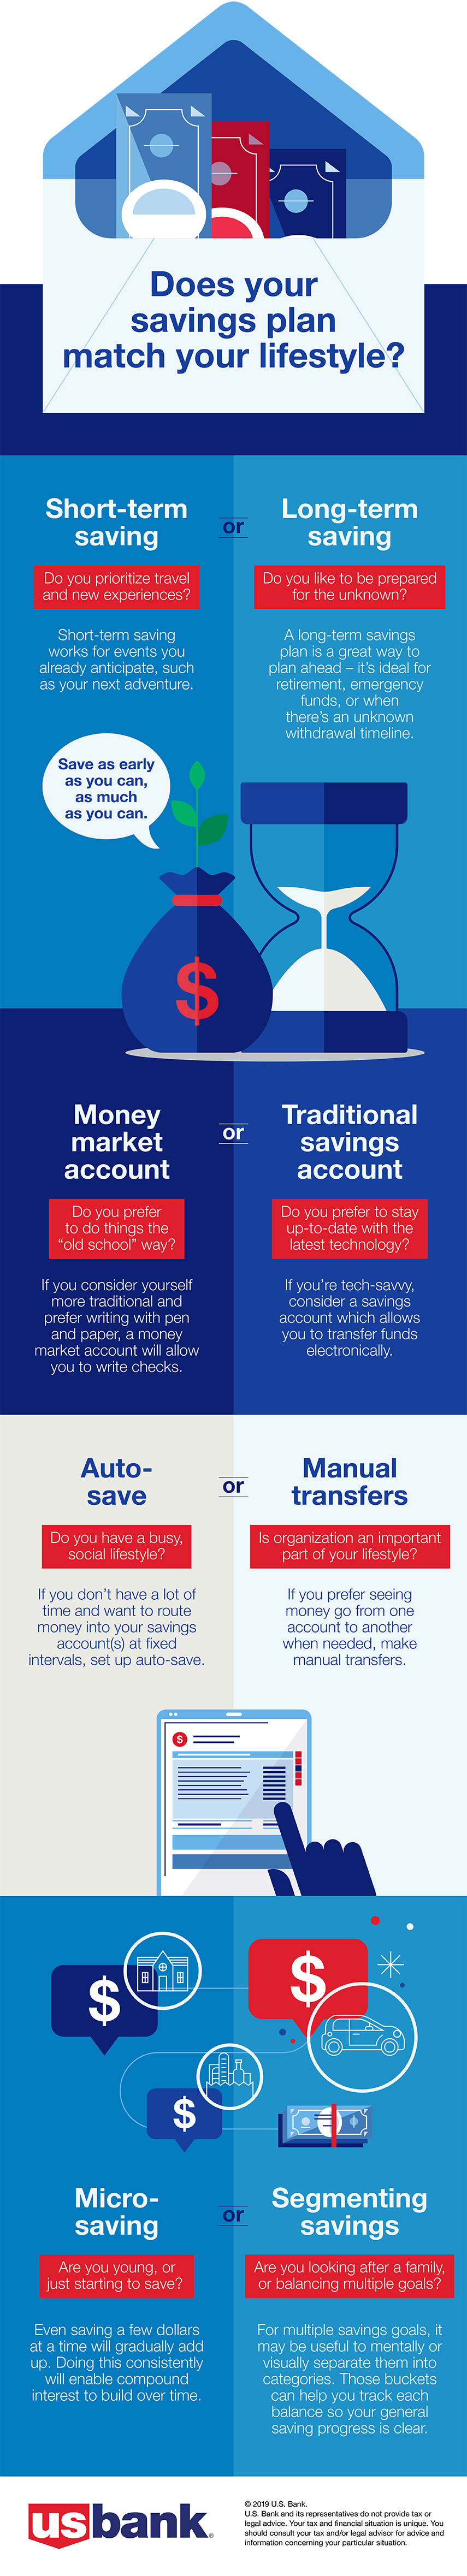 Savings plan infographic